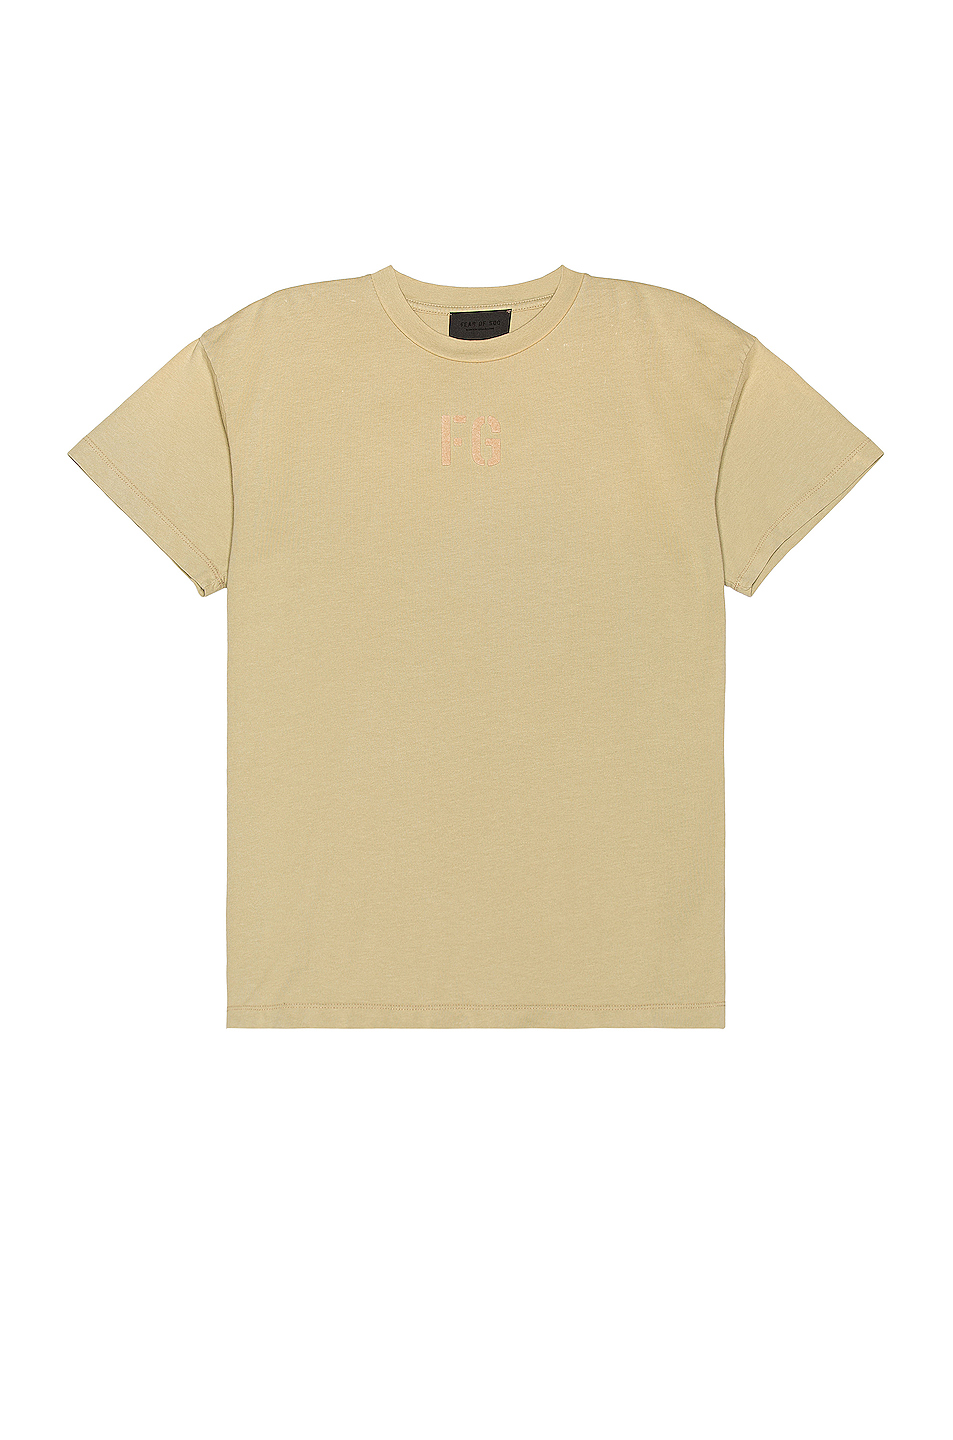 Fear of God FG Tee